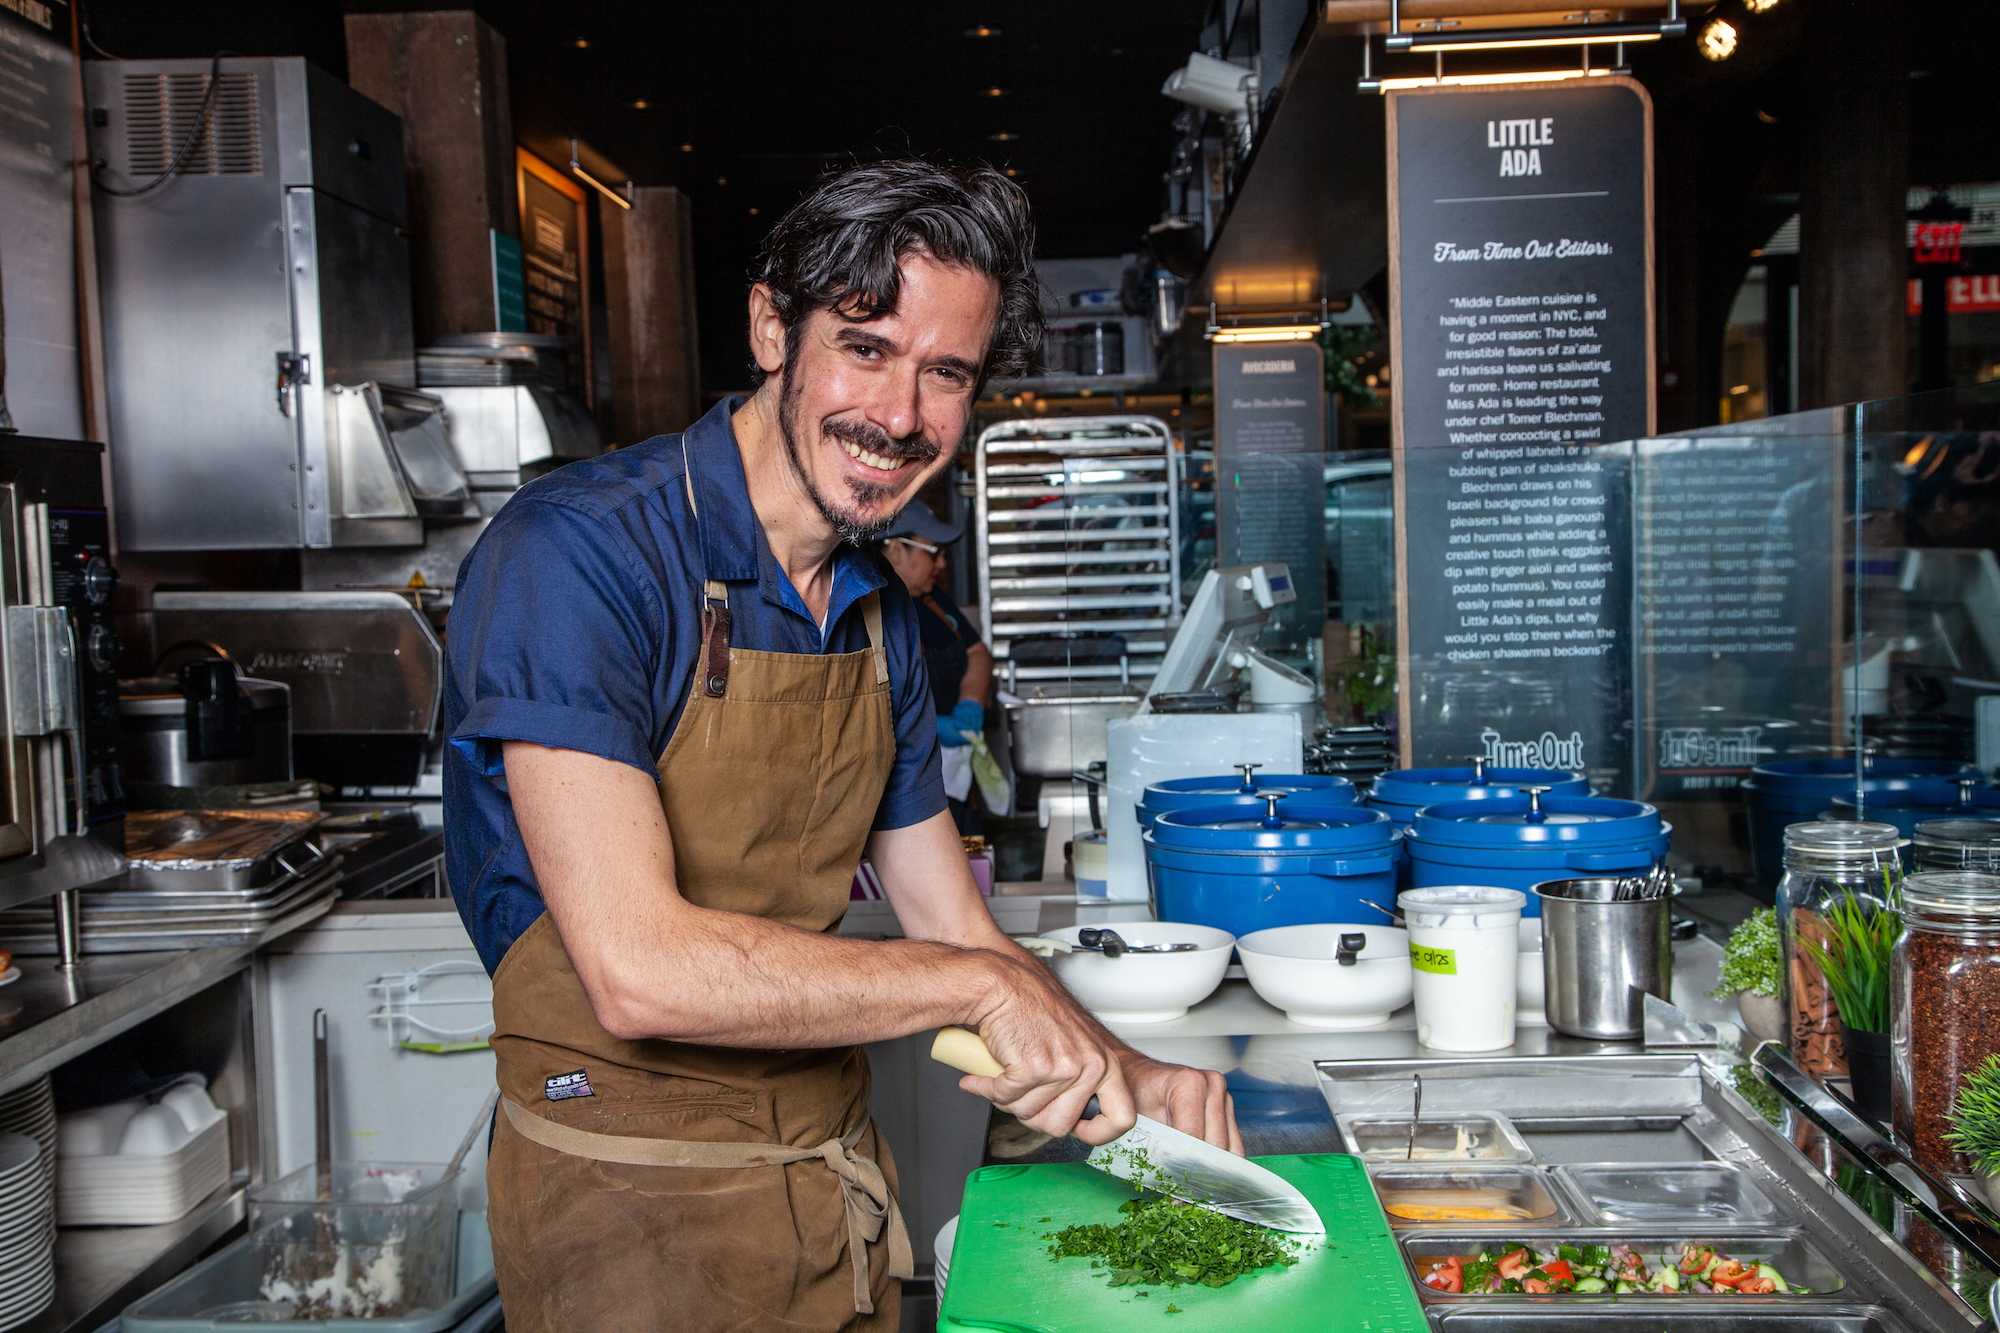 The Grilling: Tomer Blechman